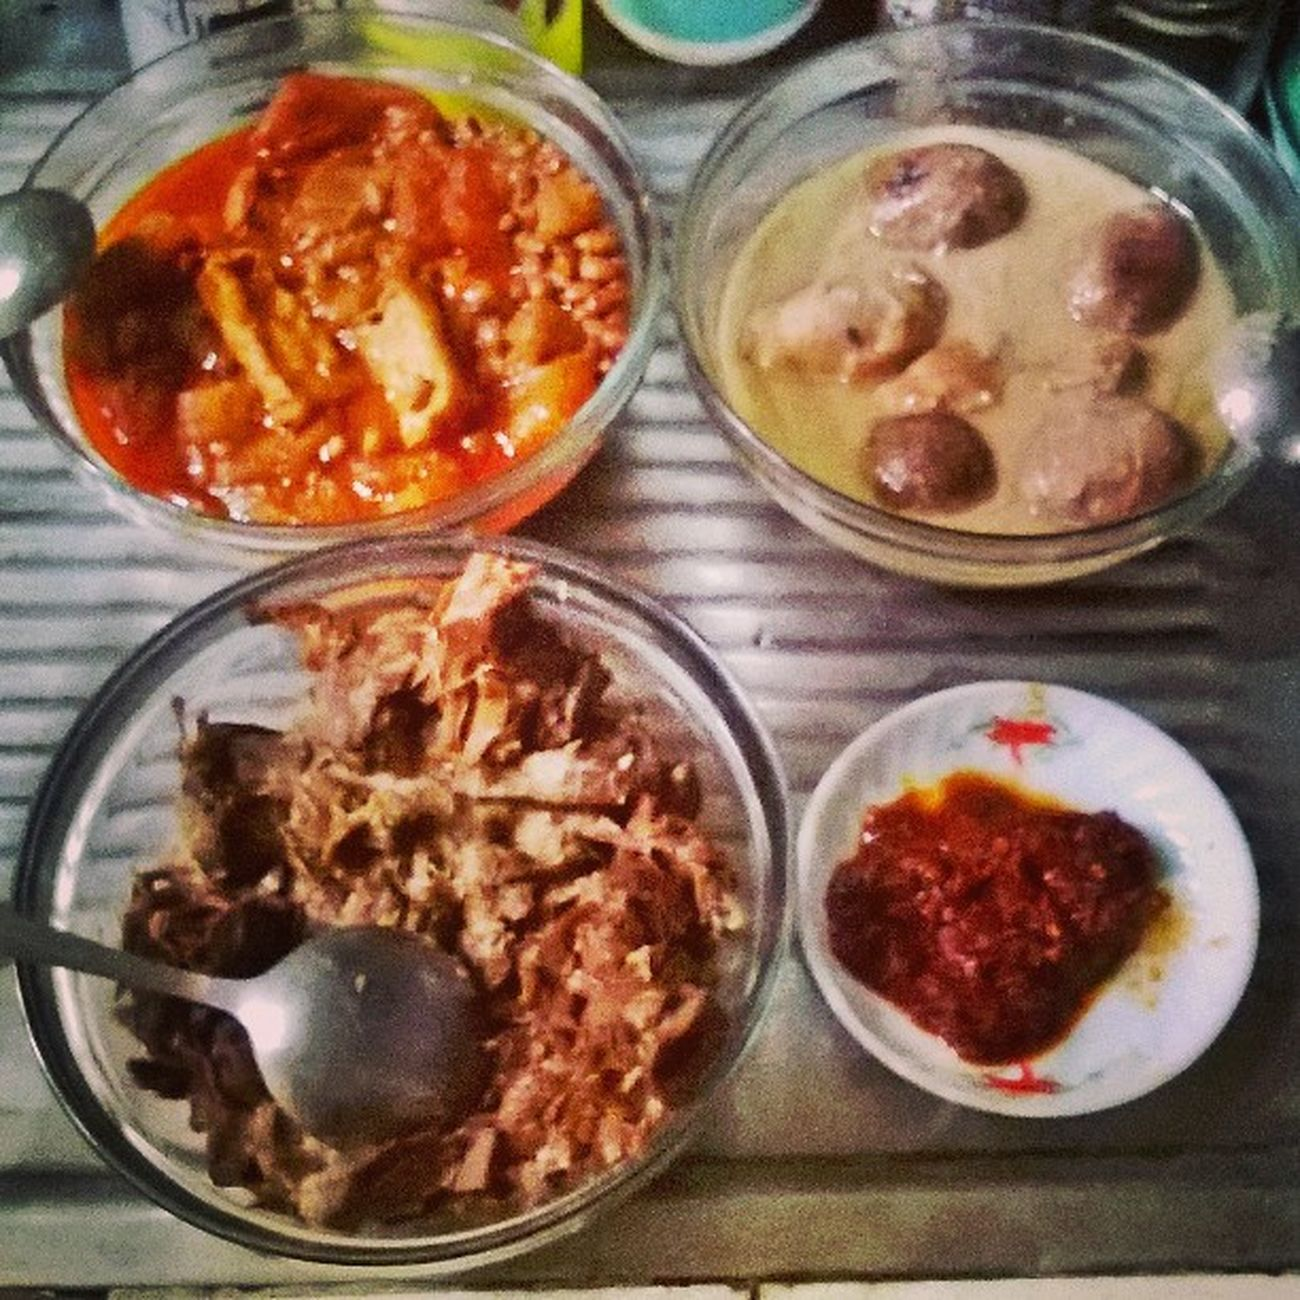 Gudeg for lunch everybody? ?? Gudeg Yogyakarta Indonesianfood Indonesiancuisine Indonesianculinary homemade Yogyafood yummy